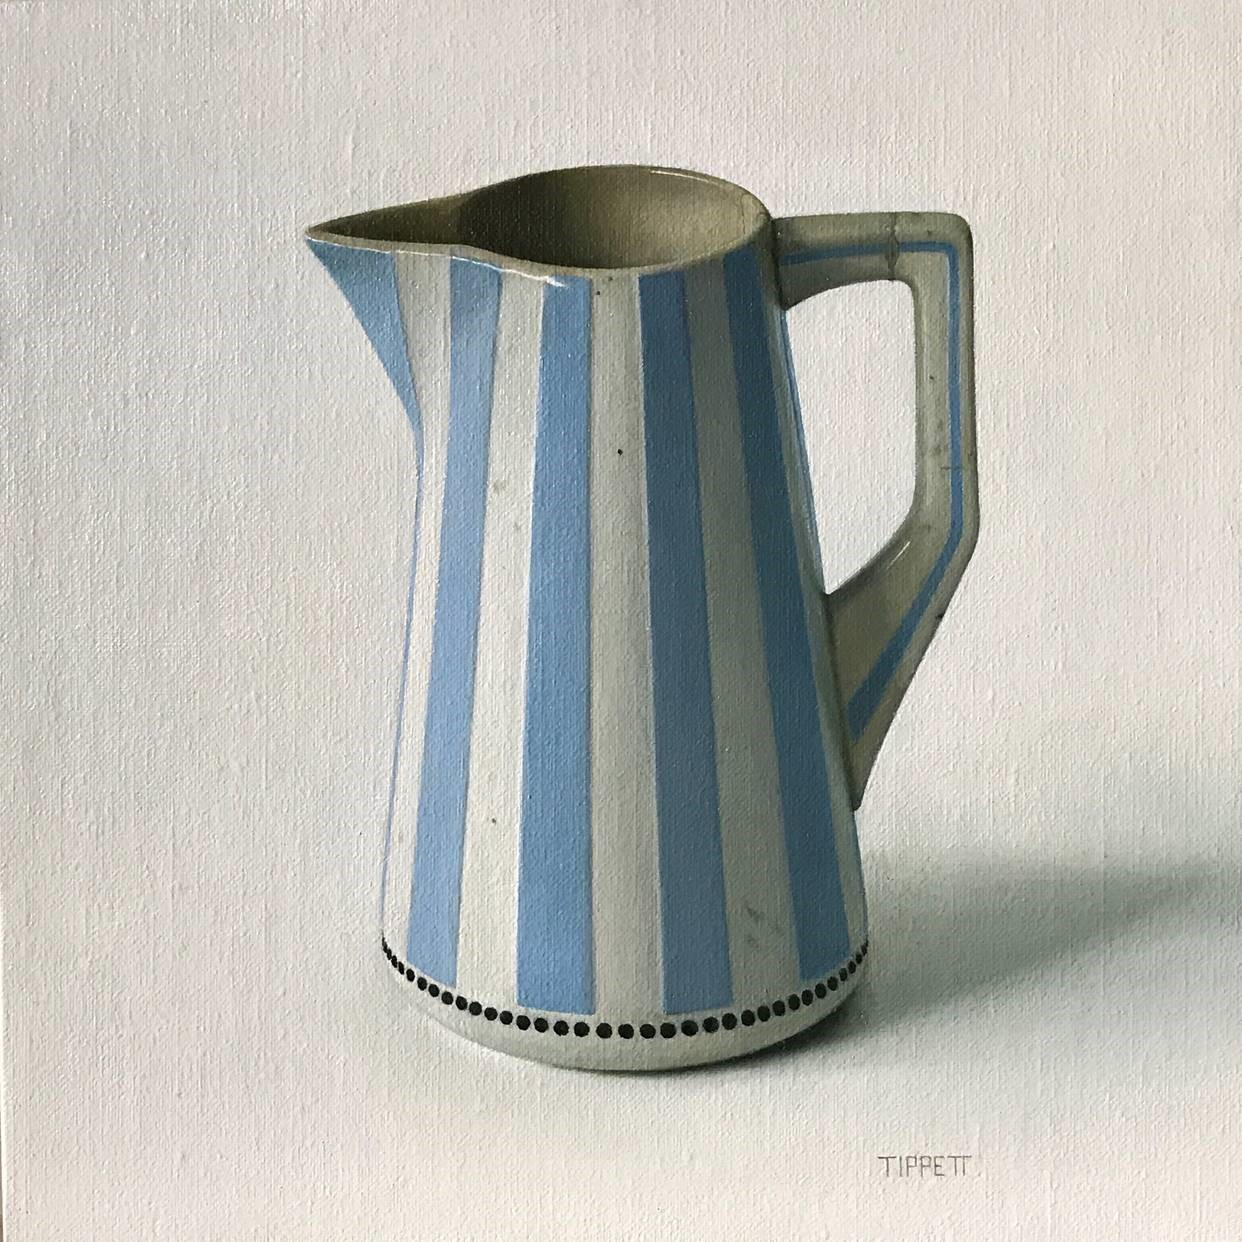 Blue-and-white-striped-jug-2019-25-x-25-4500